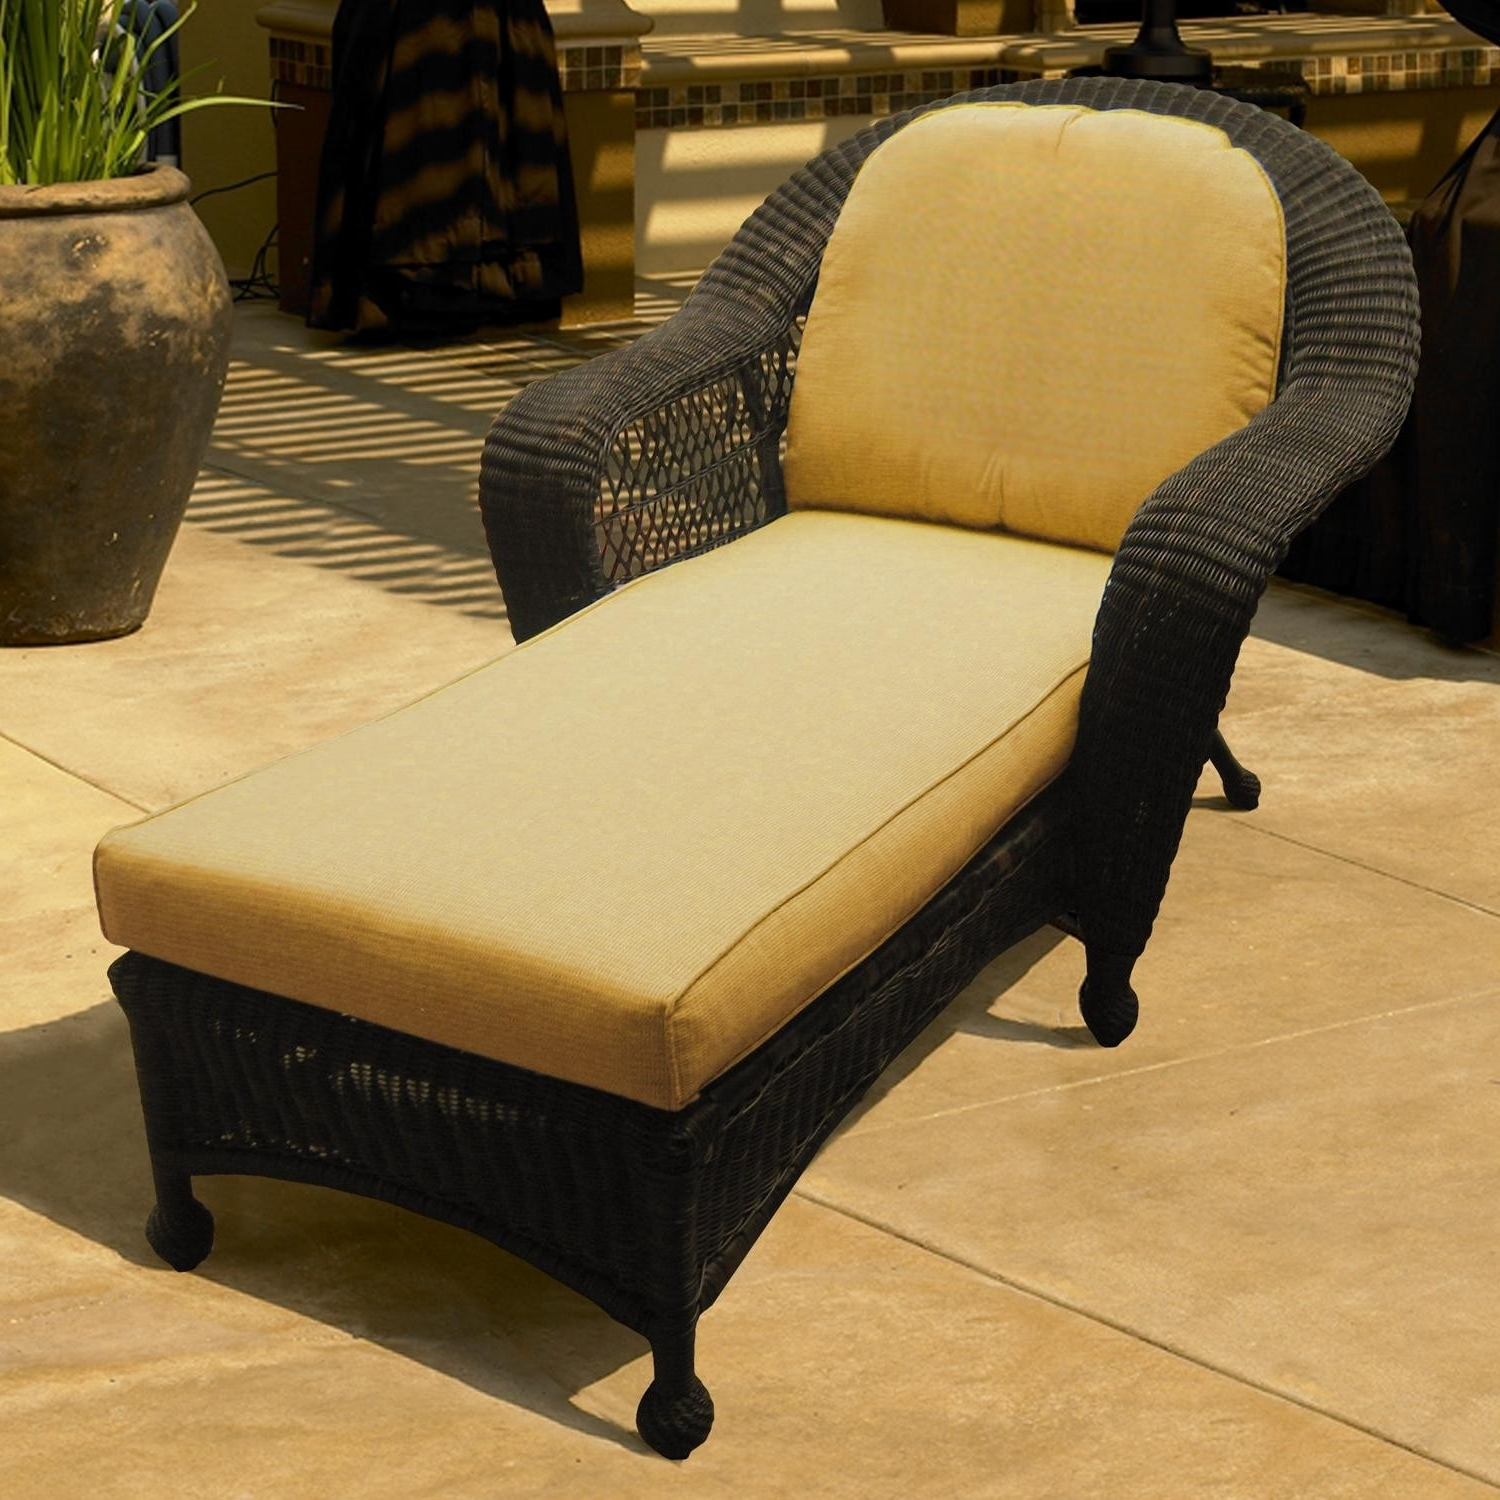 Charleston Wicker Chaise Lounge For 2017 Wicker Chaise Lounge Chairs For Outdoor (View 2 of 15)